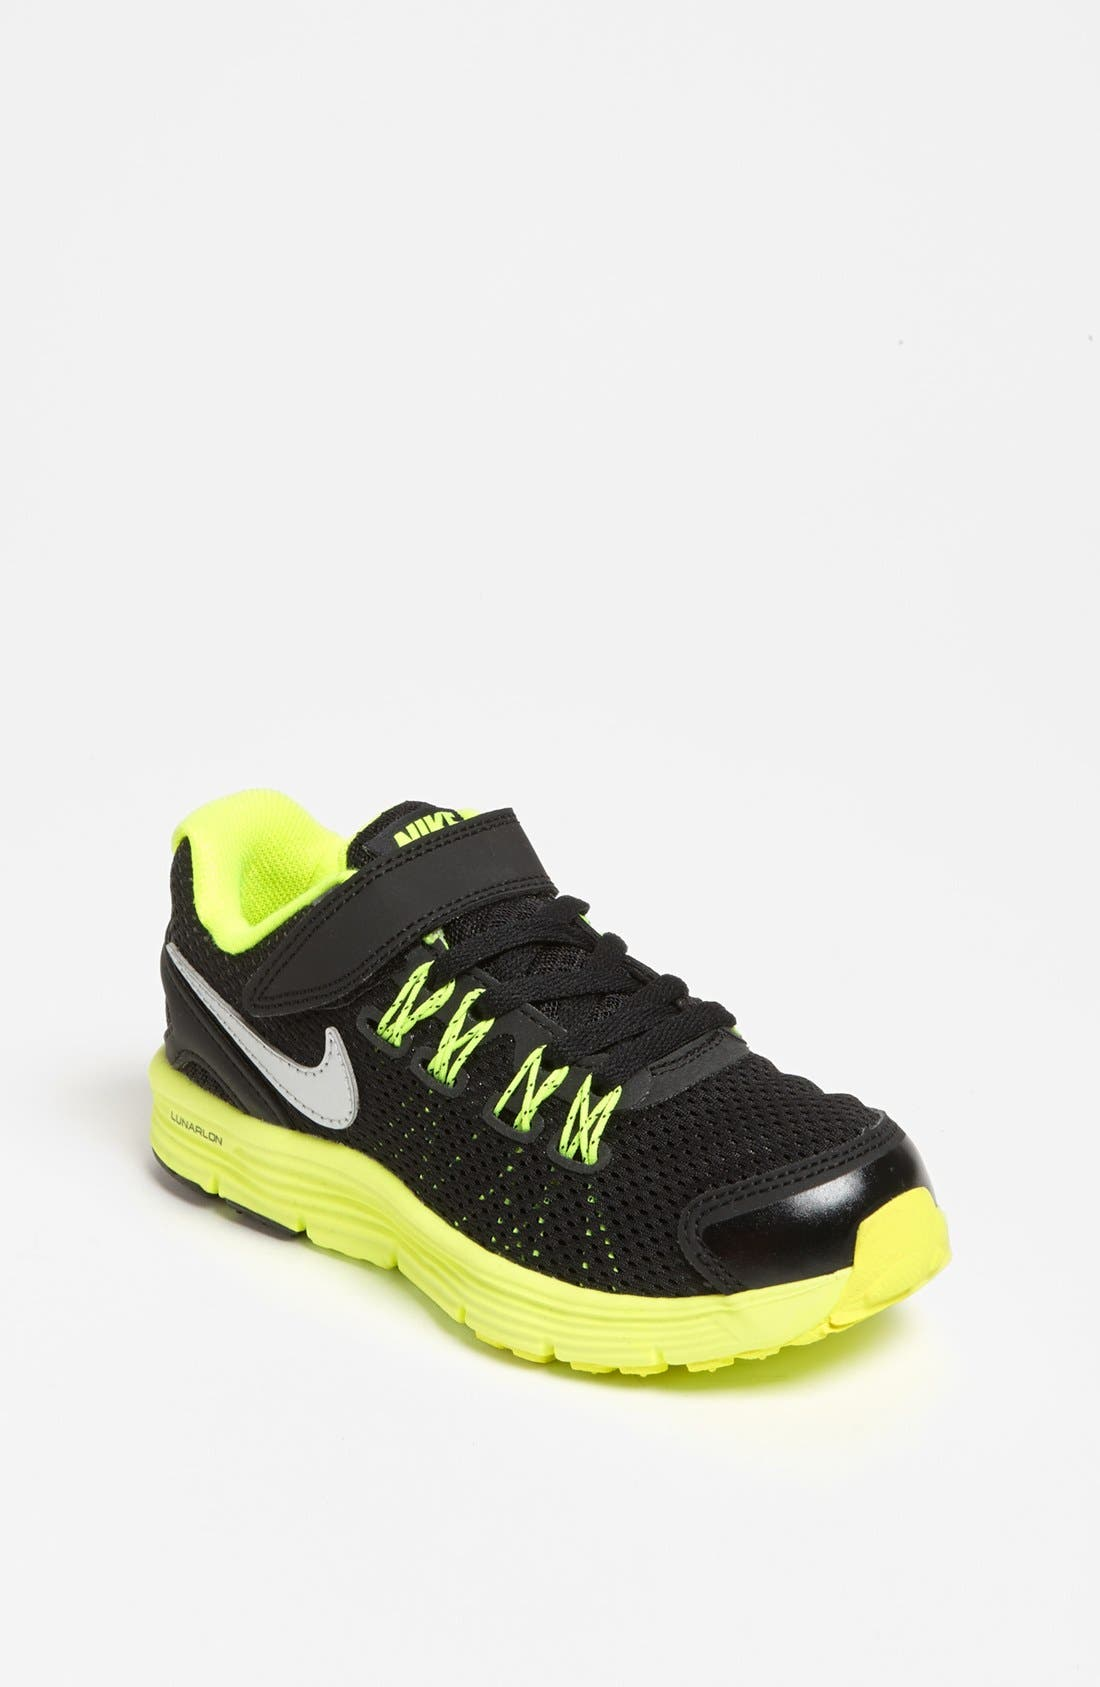 Alternate Image 1 Selected - Nike 'LunarGlide 4' Running Shoe (Baby, Walker, Toddler & Little Kid)